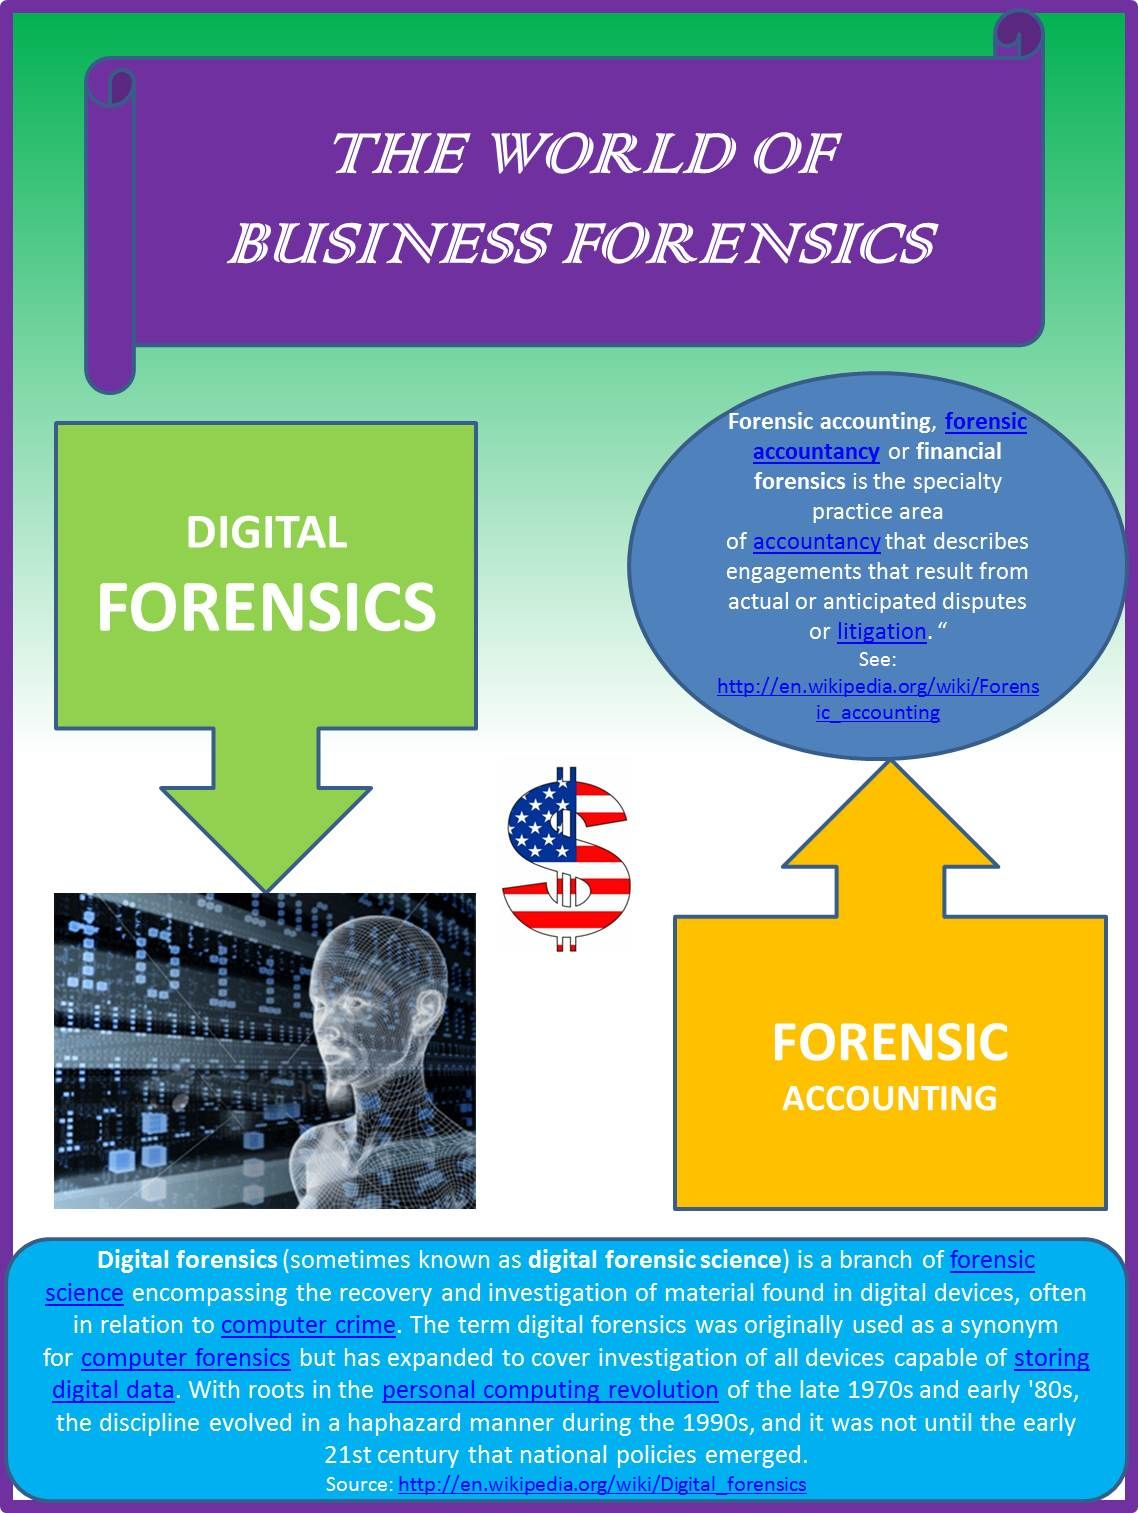 Forensic5 | Caribbean Conference on Business Forensics | Pinterest